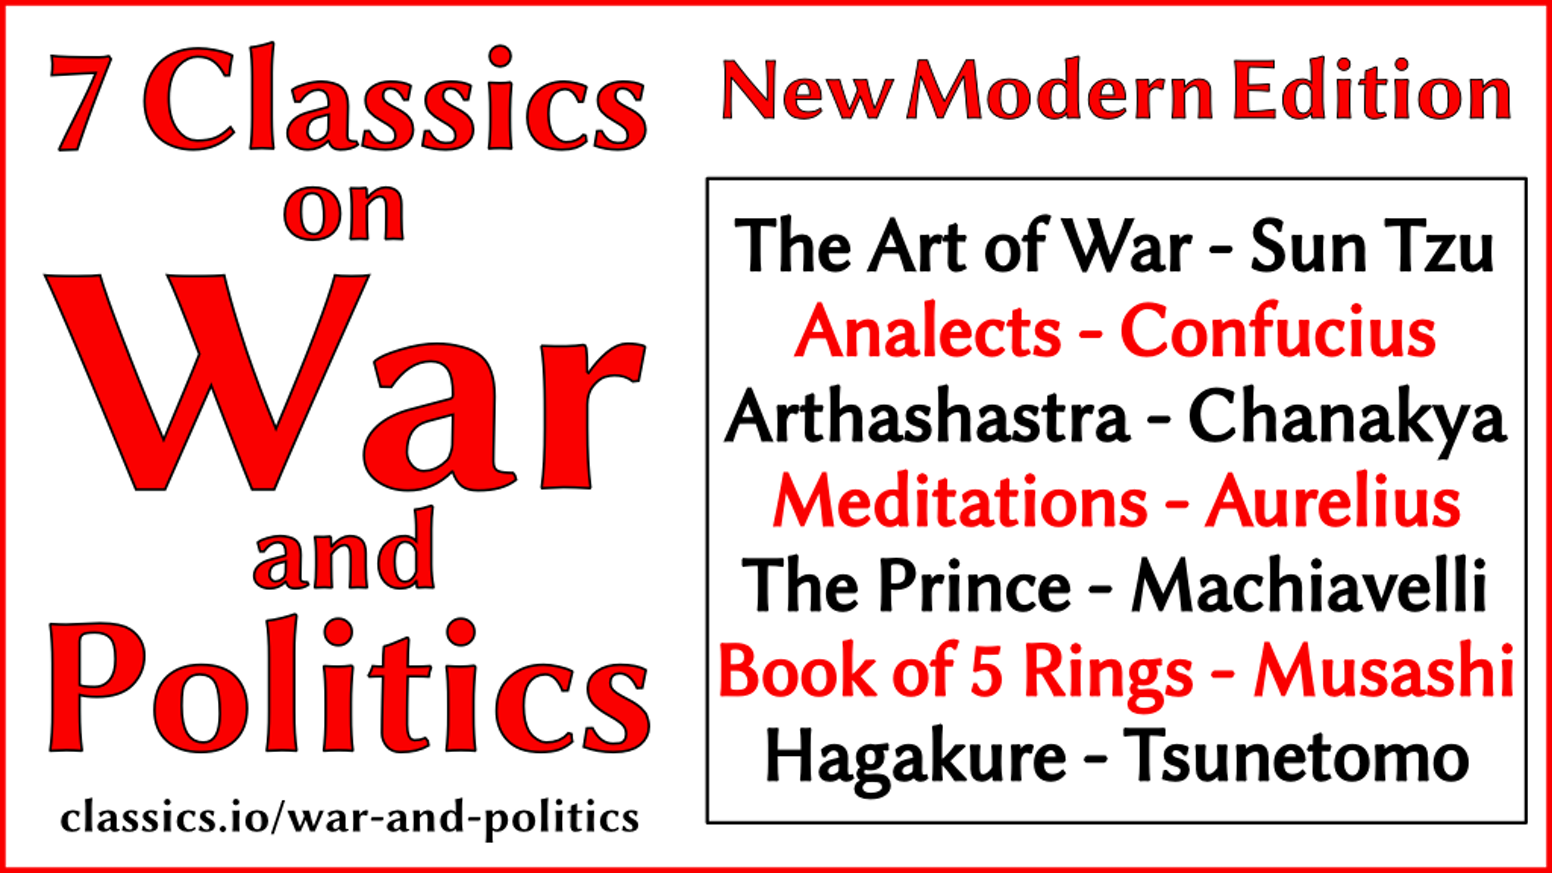 New modern edition of seven classics of politics and military strategy - We want to make classical works more accessible.